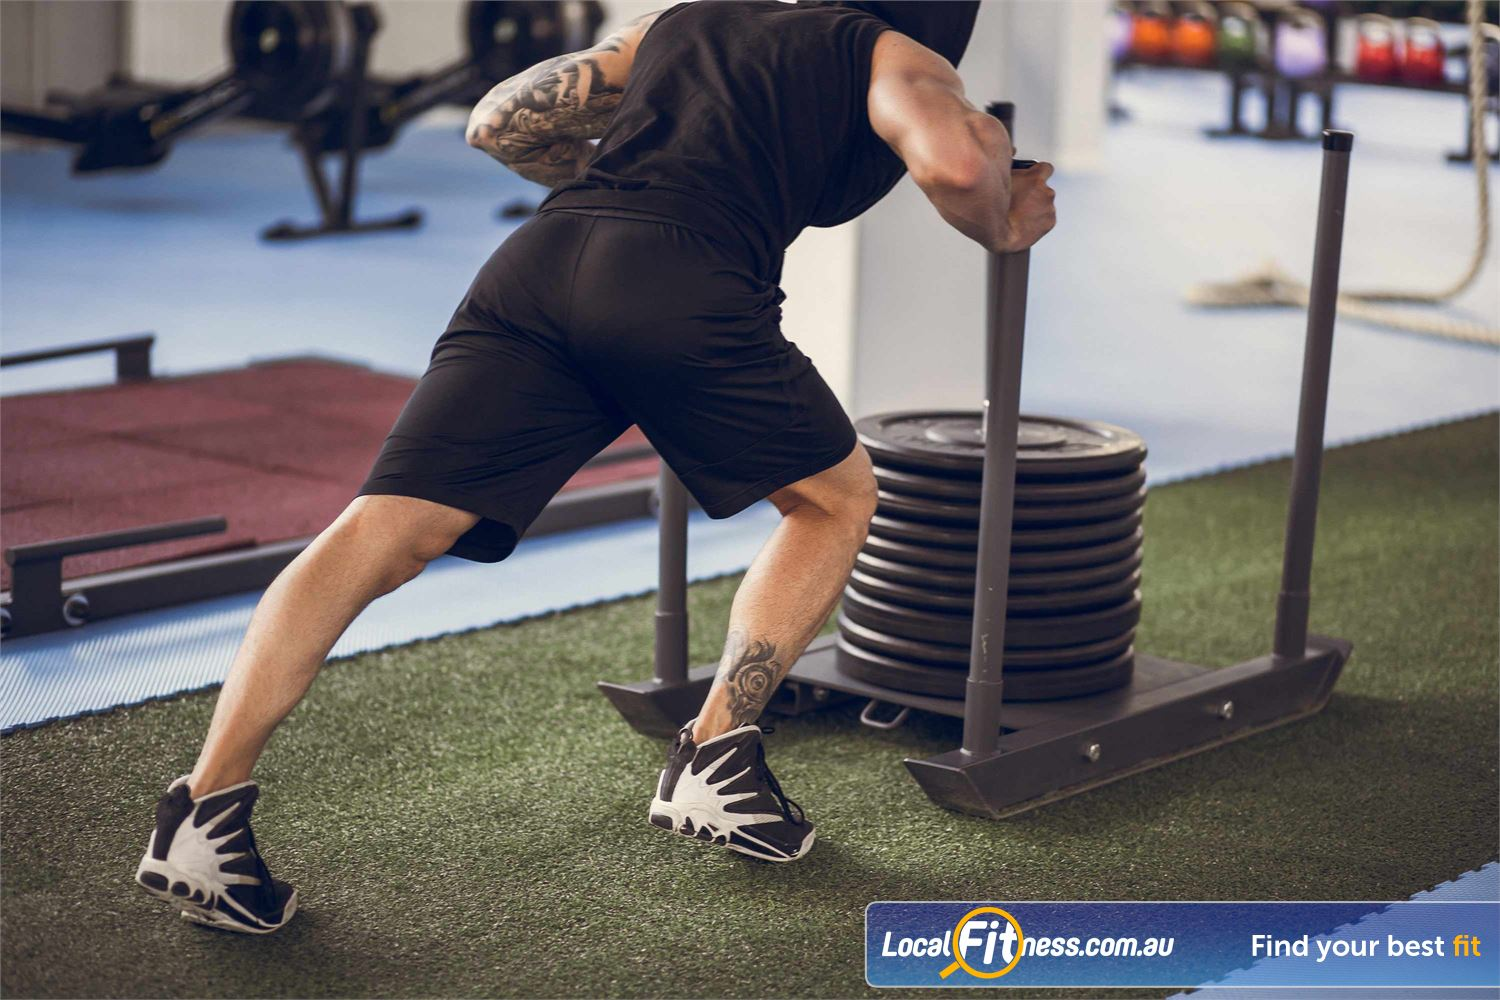 Fit n Fast Near Marrickville Our dedicated St Peters HIIT gym provides QMAX functional training classes.